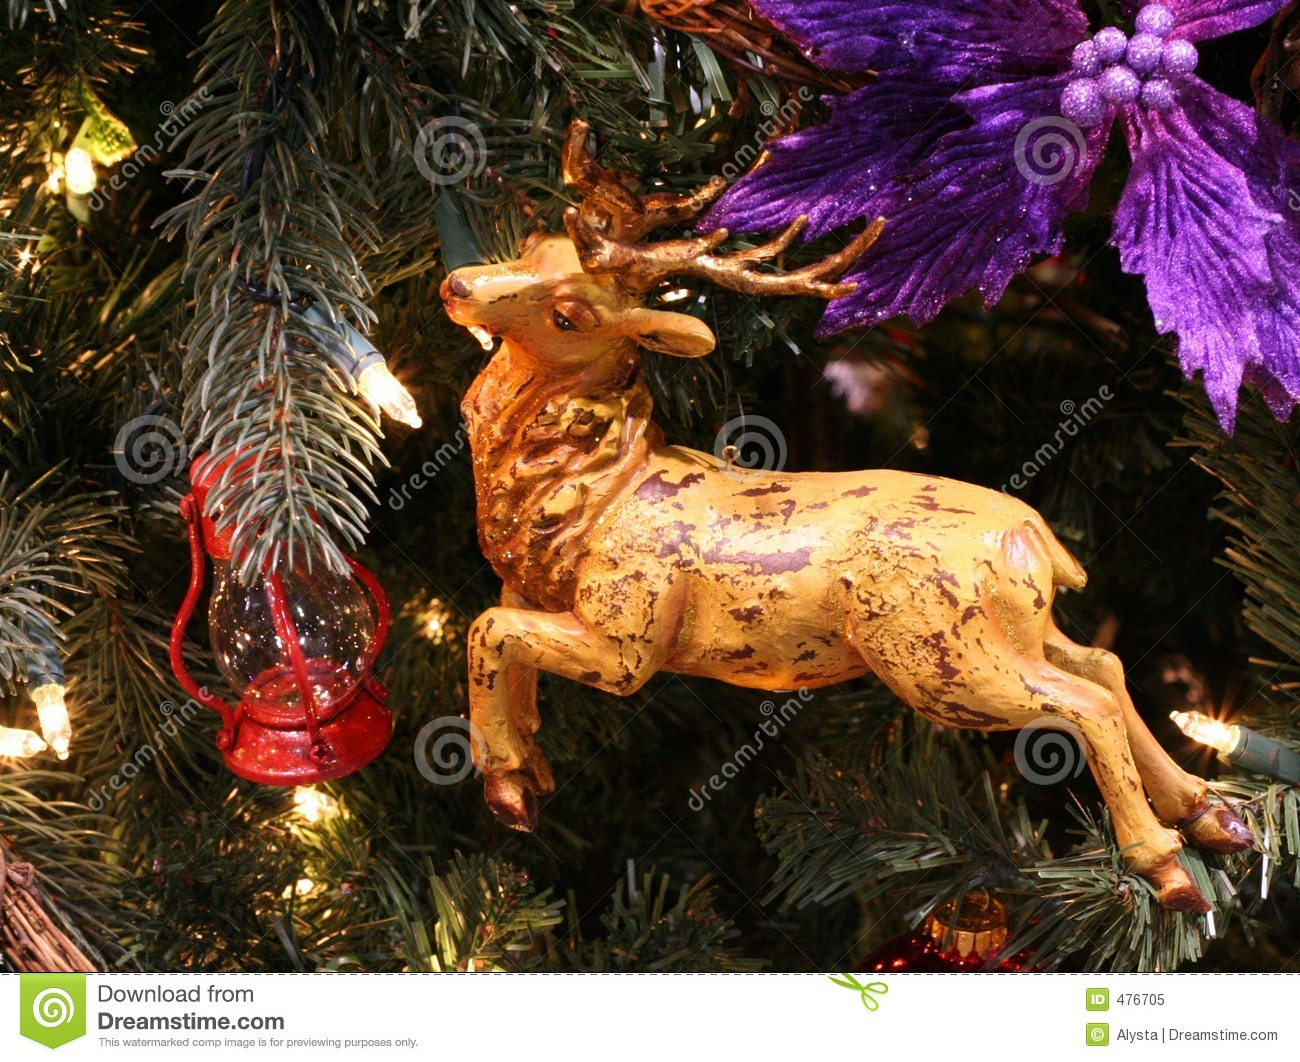 wood deer christmas ornament - Wooden Deer Christmas Decorations